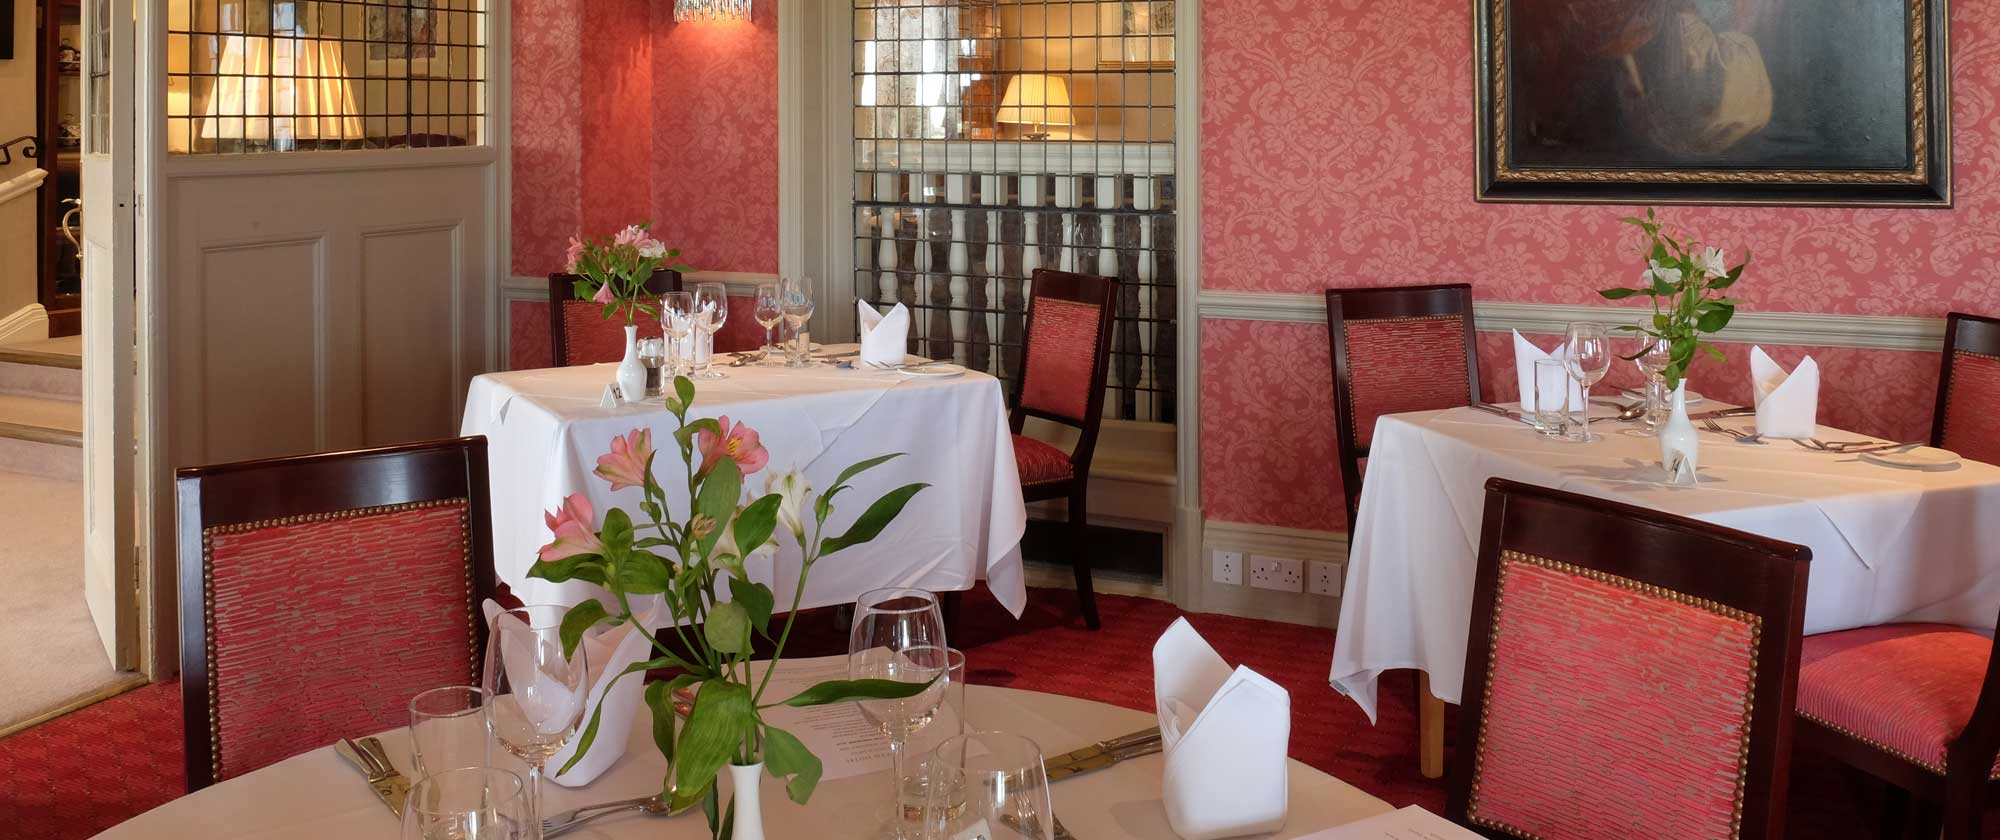 Dining at The Wentworth Restaurant in Aldeburgh